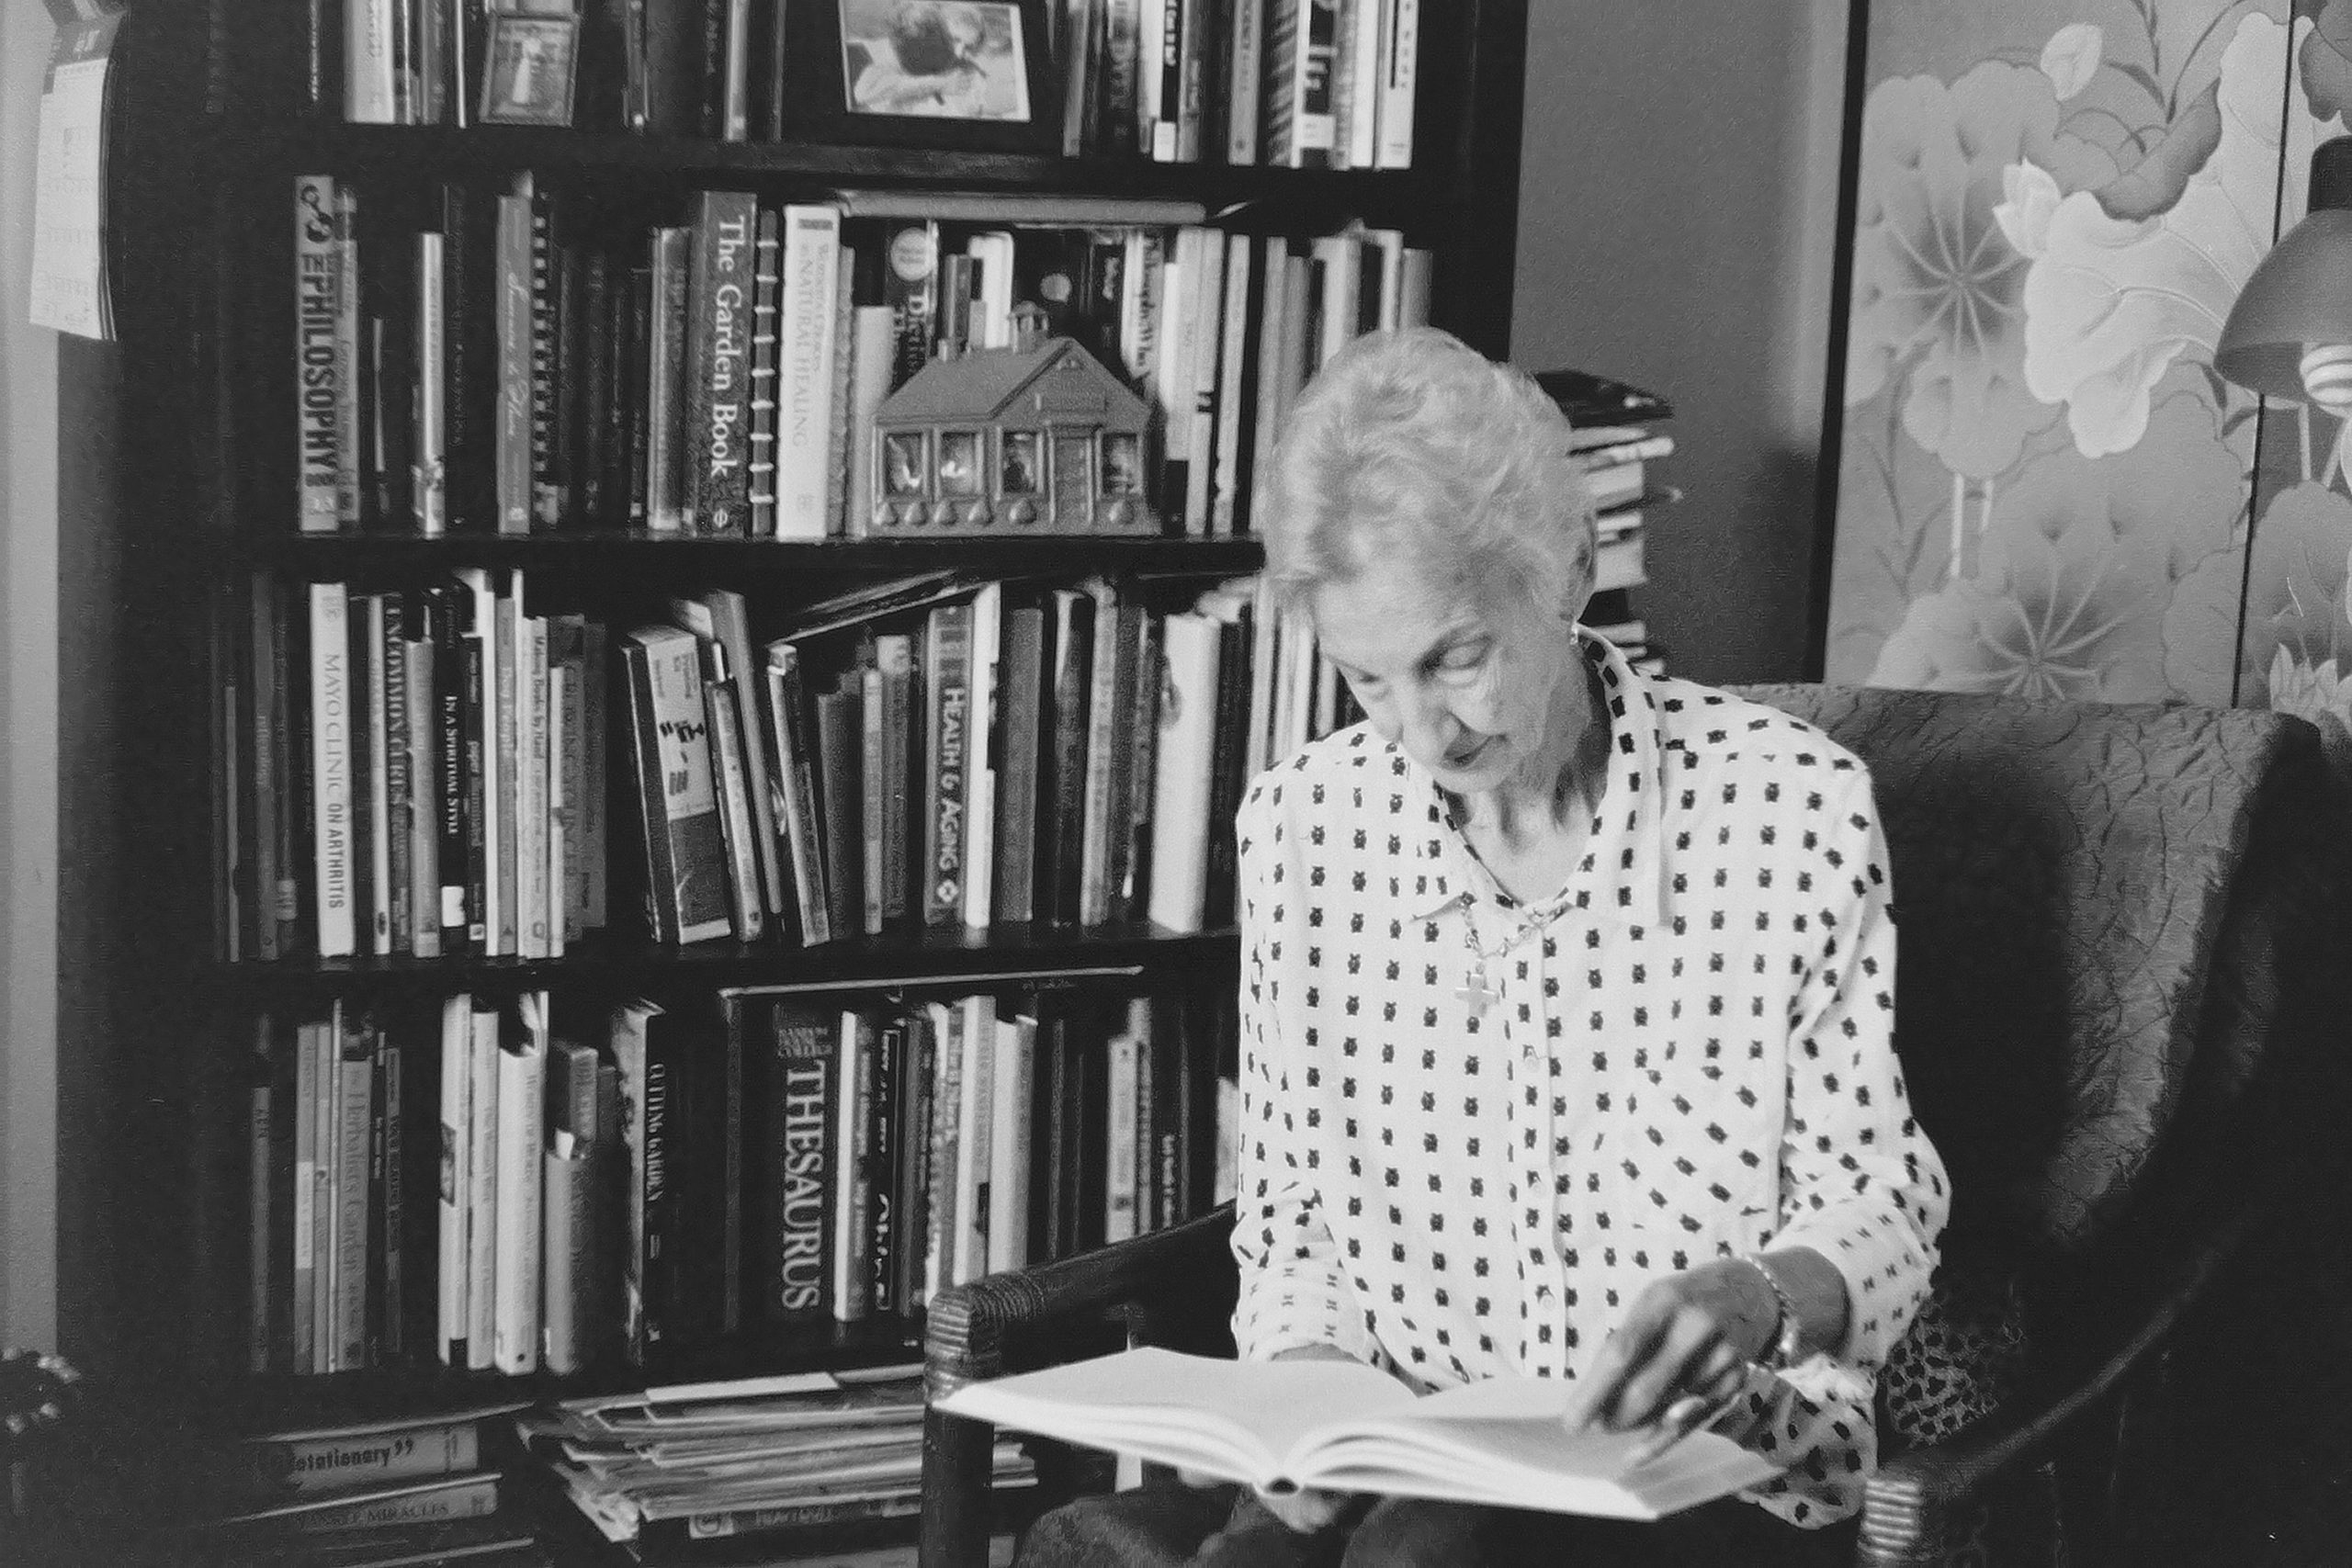 A black and white photo of a woman reading a book